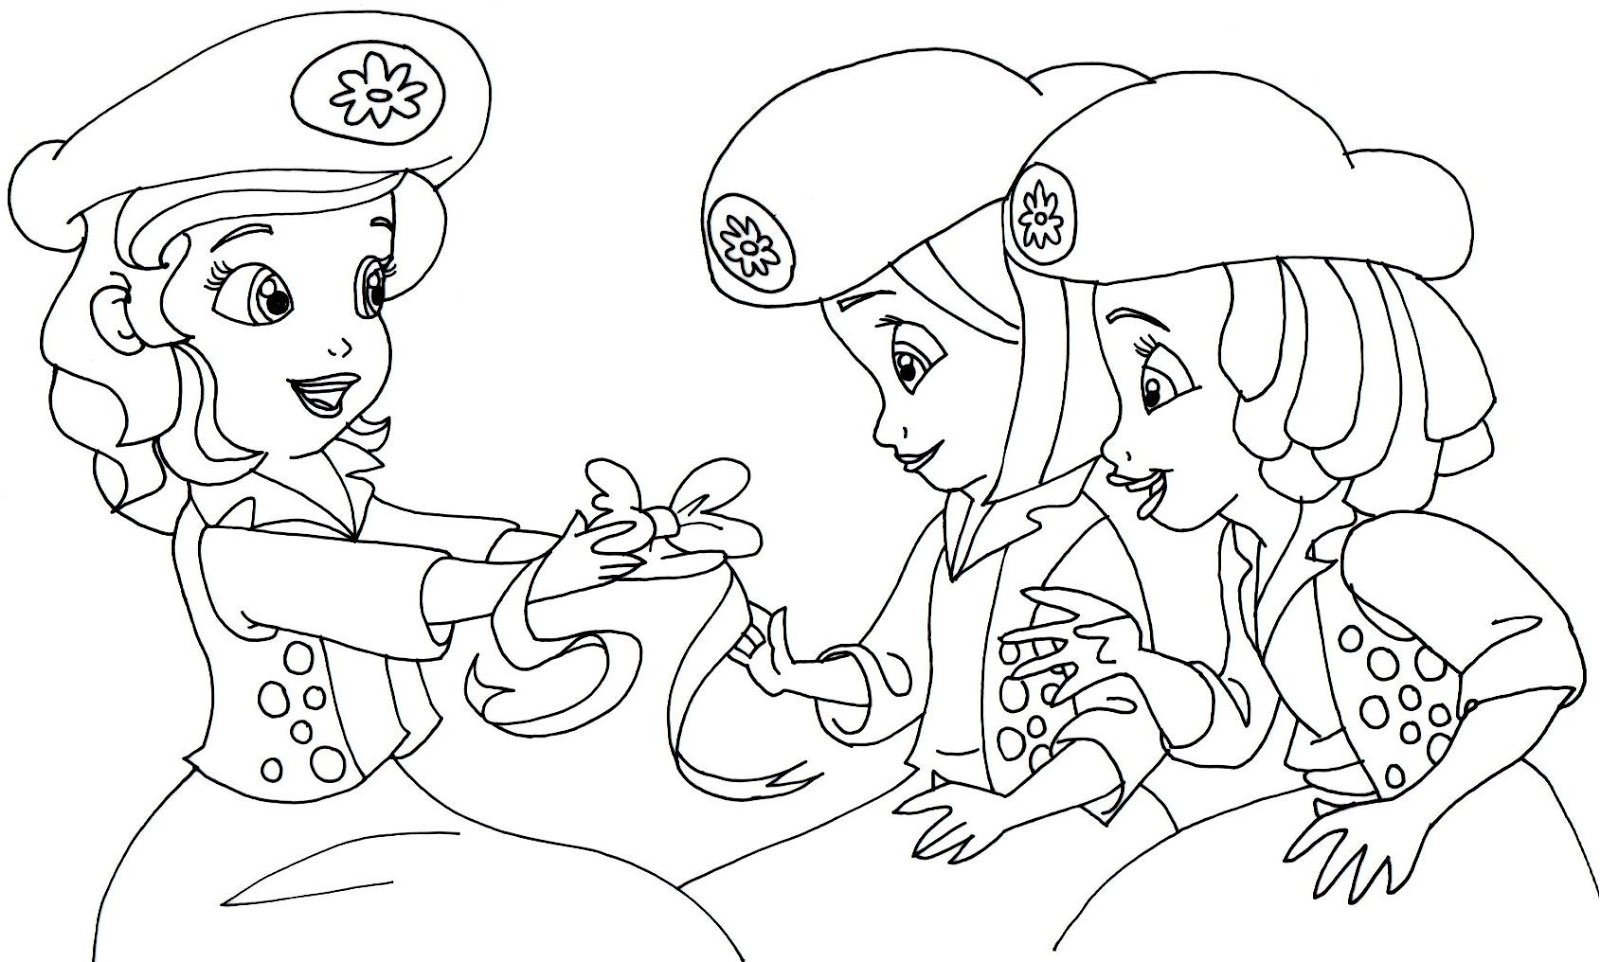 Sofia The First Coloring Pages: Buttercups Sofia the First